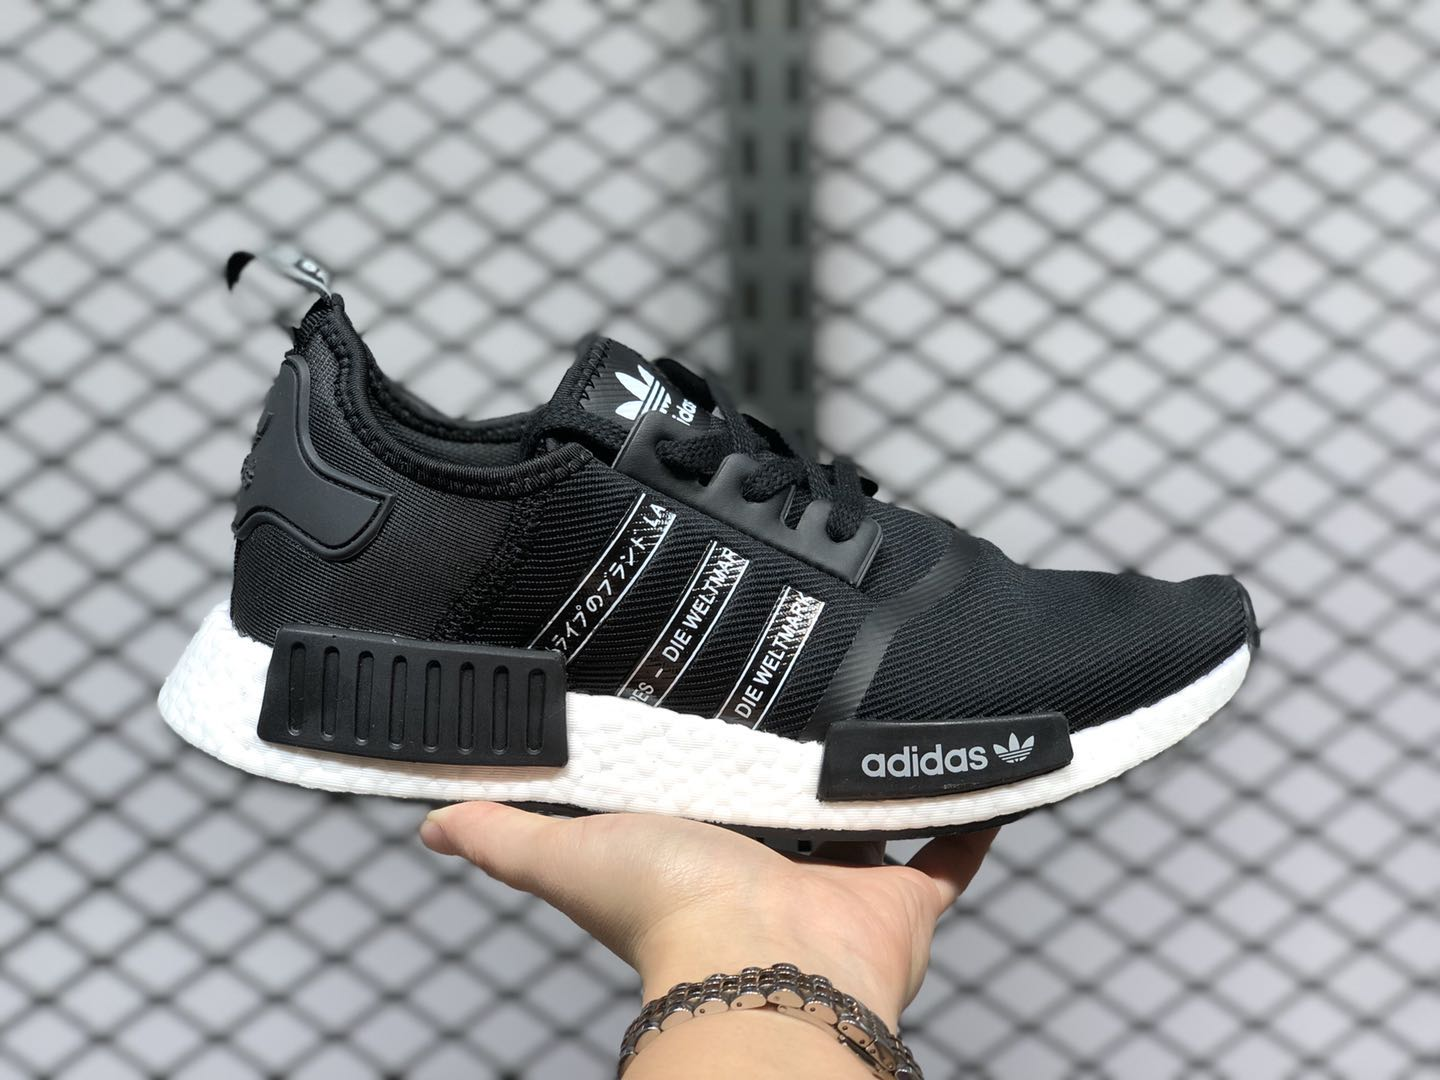 New Release Adidas NMD R-1 FX1033 Core